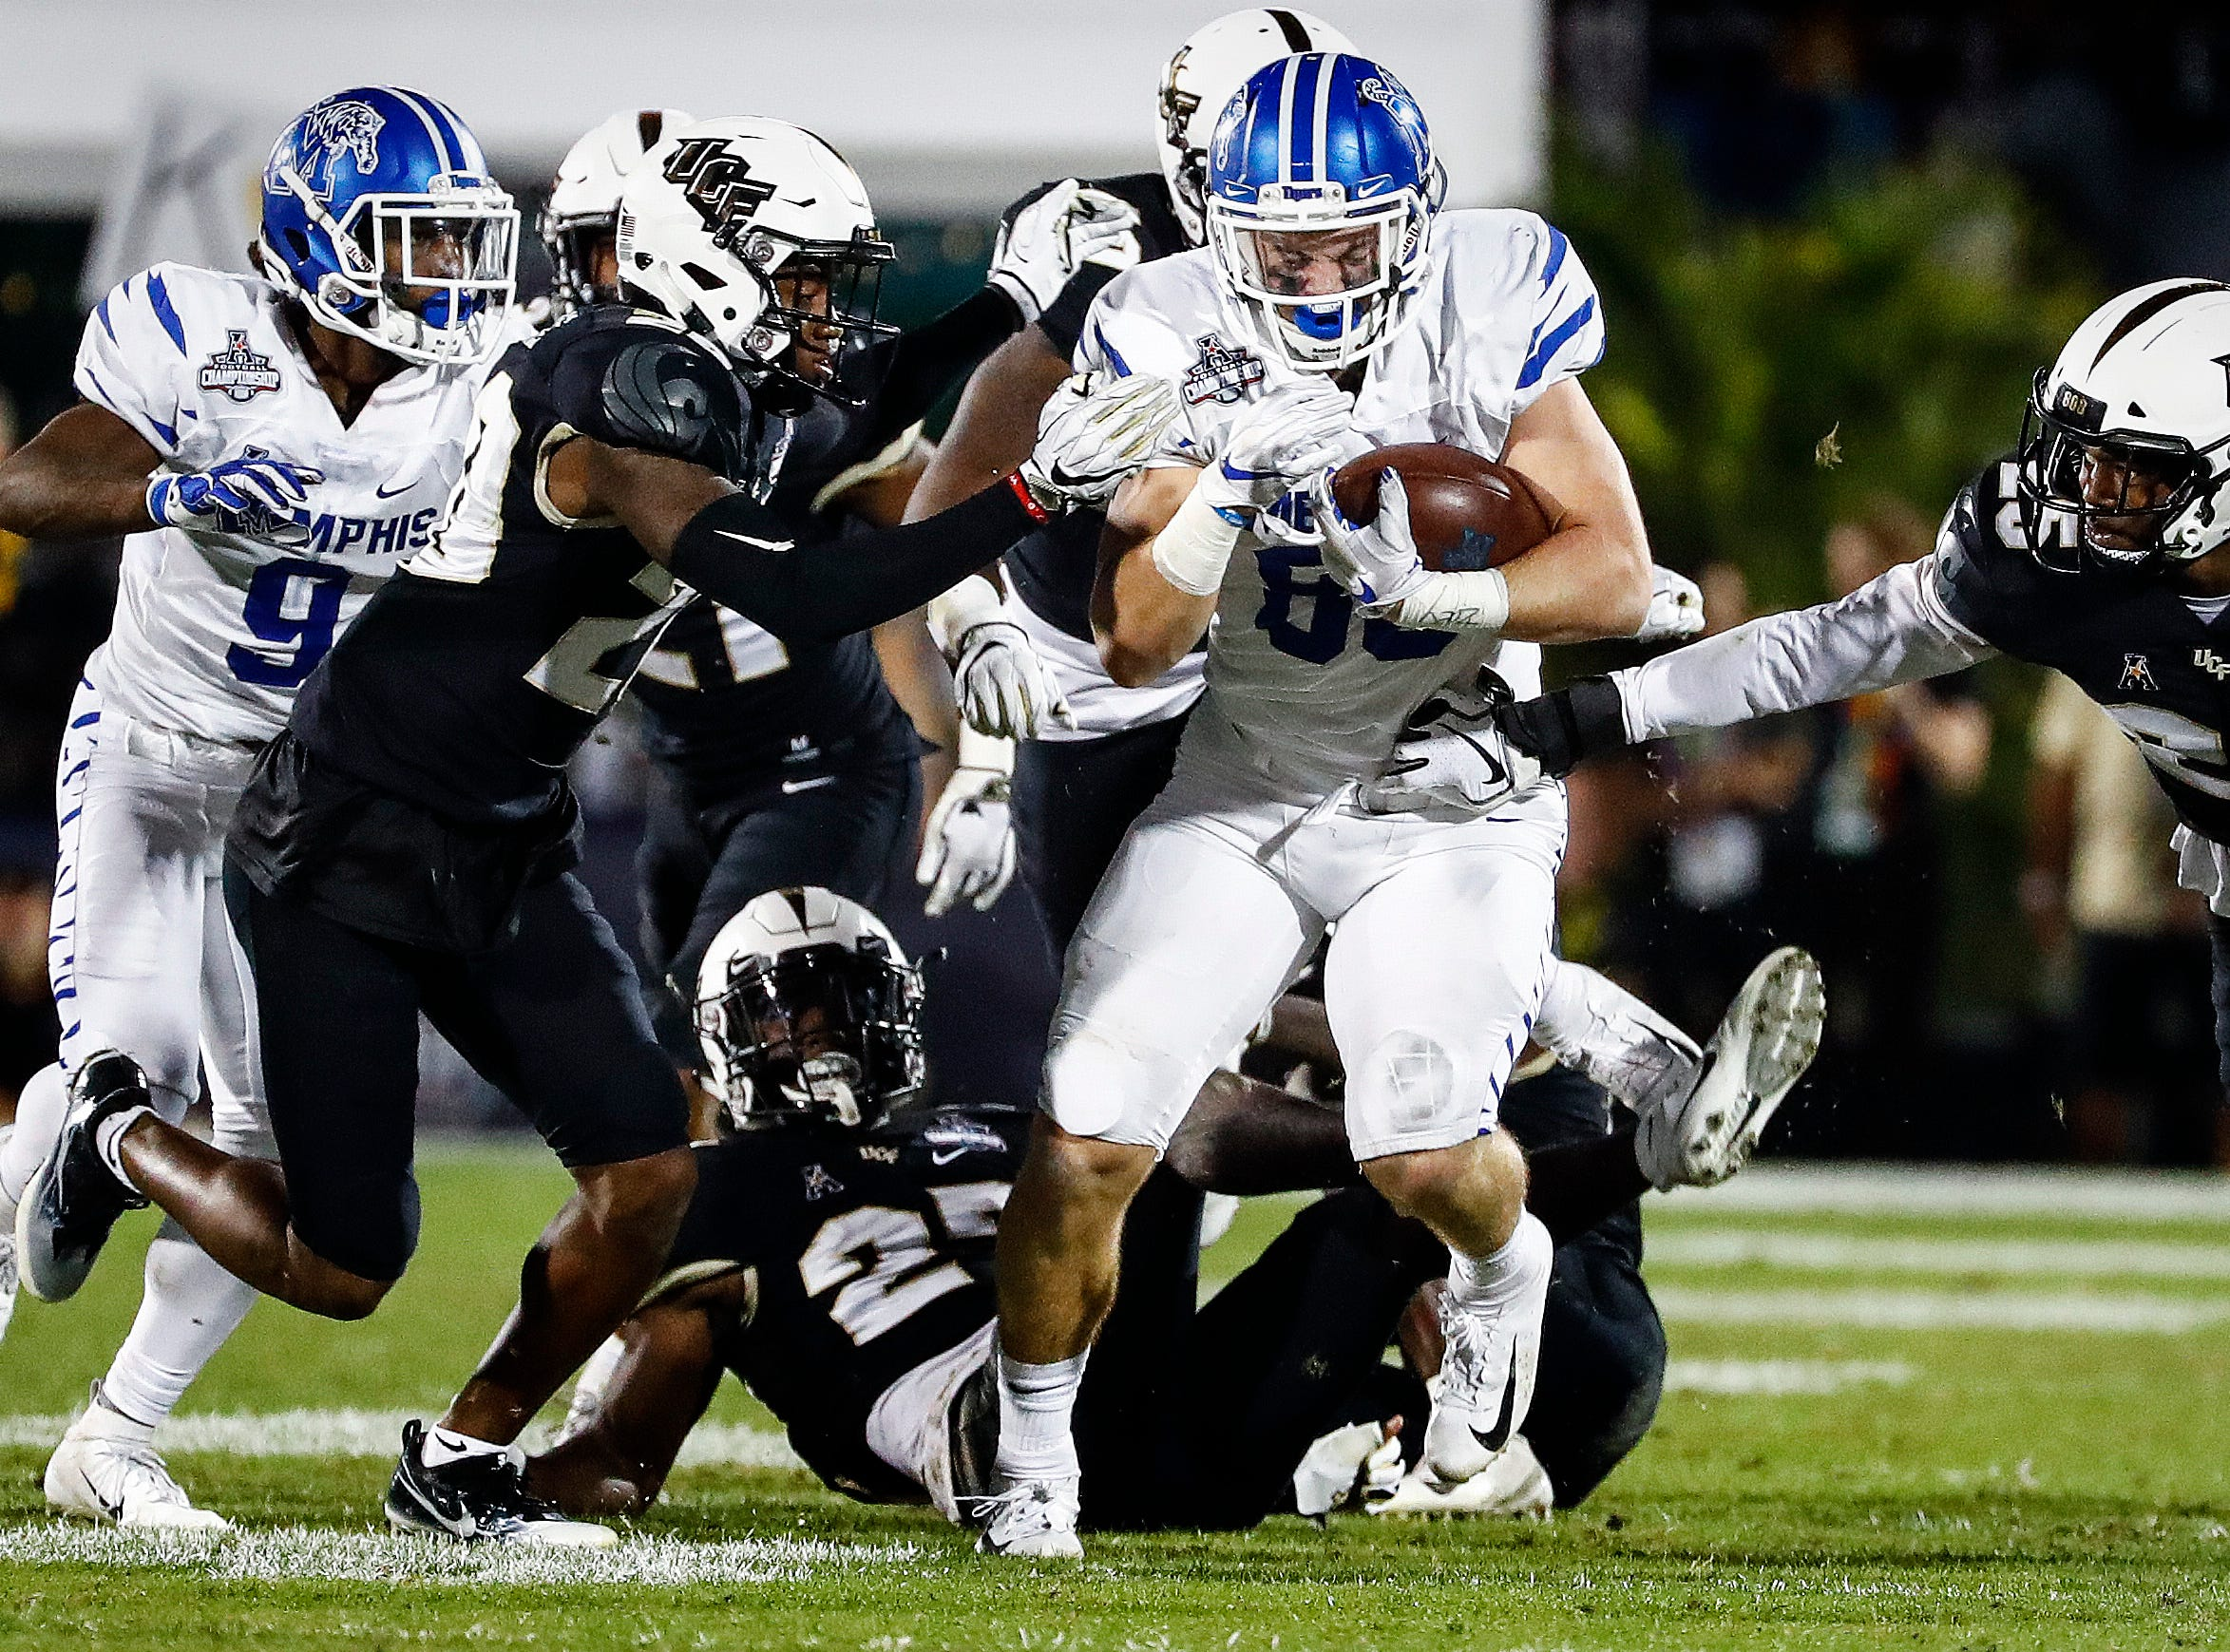 Memphis tight end Joey Magnifico (middle) fights for a first down against the UCF defense during action at the AAC Championship Football game Saturday, December 1, 2018 in Orlando.